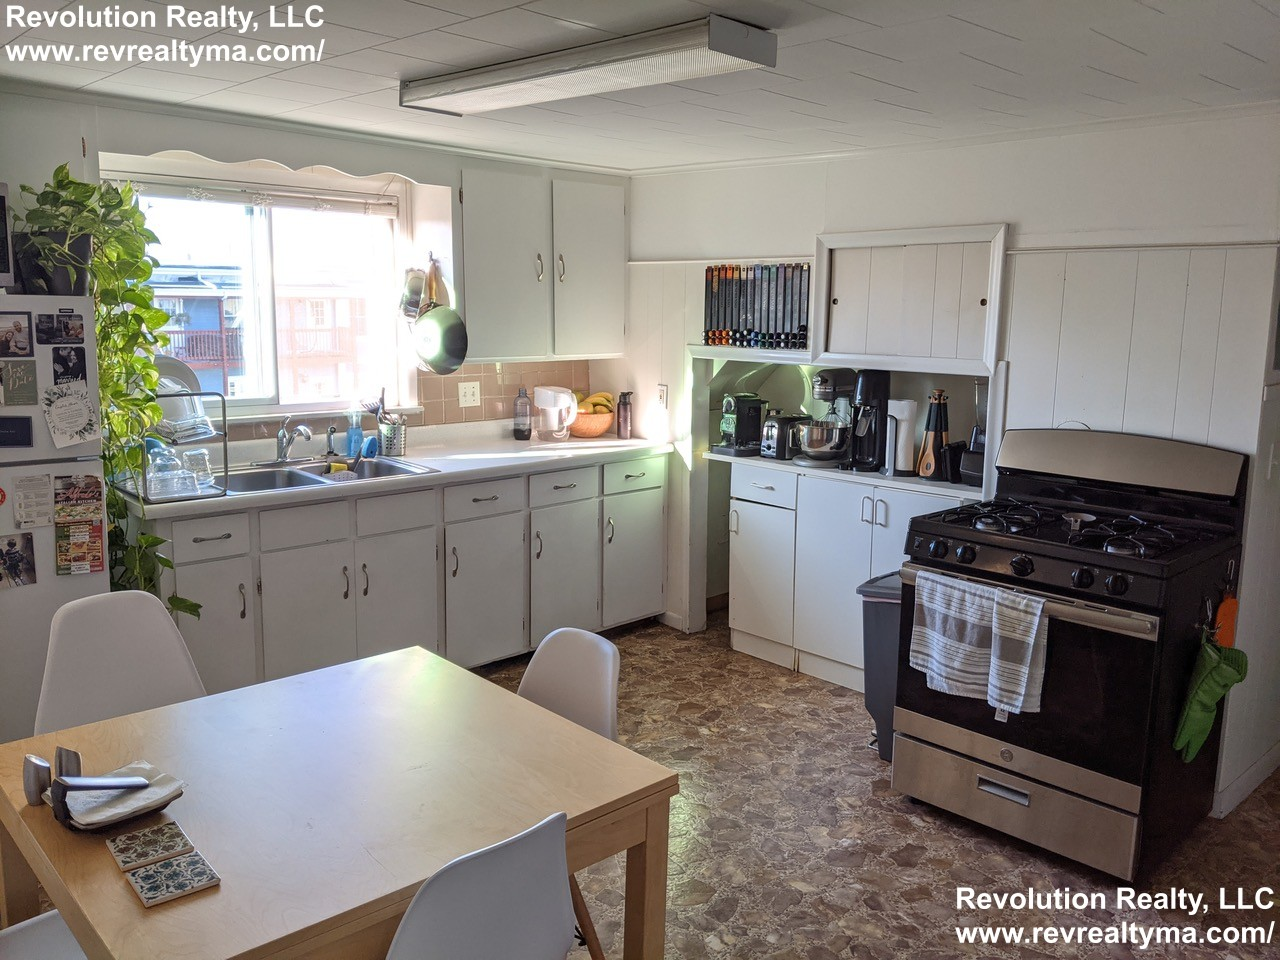 1 Bed, 1 Bath apartment in Somerville for $2,000